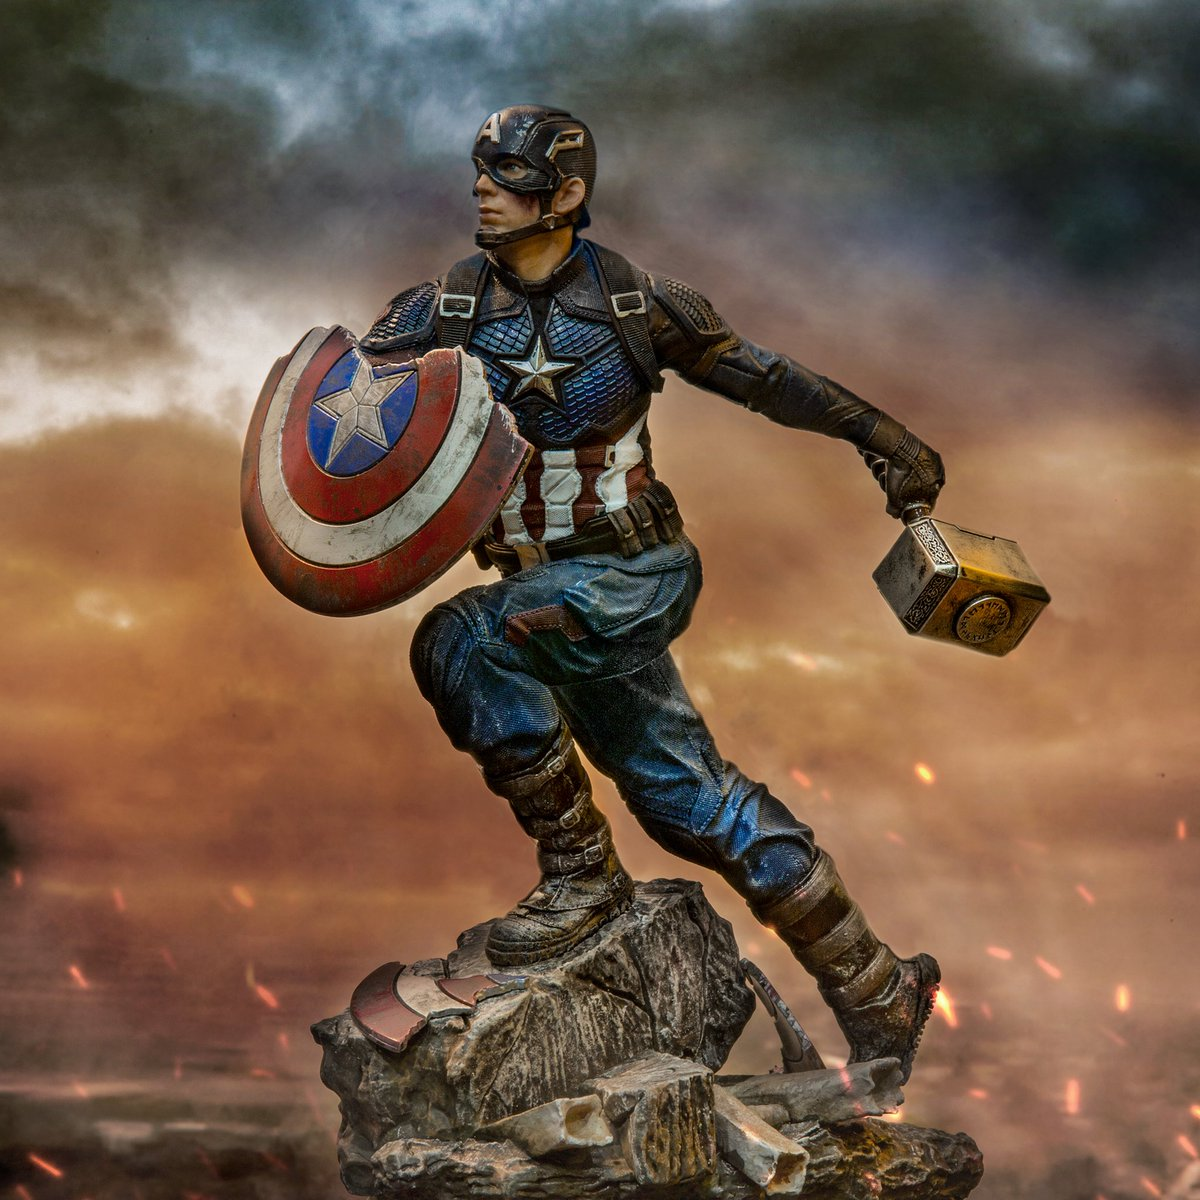 #AvengersEndgame Battle Diorama Series #CaptainAmerica 1/10 Deluxe Art Scale Limited Edition Statue https://www.bigbadtoystore.com/Search?HideSoldOut=true&Company=609&PageSize=50&SortOrder=New&Brand=2085&utm_source=site&utm_medium=link&utm_campaign=Twitter…